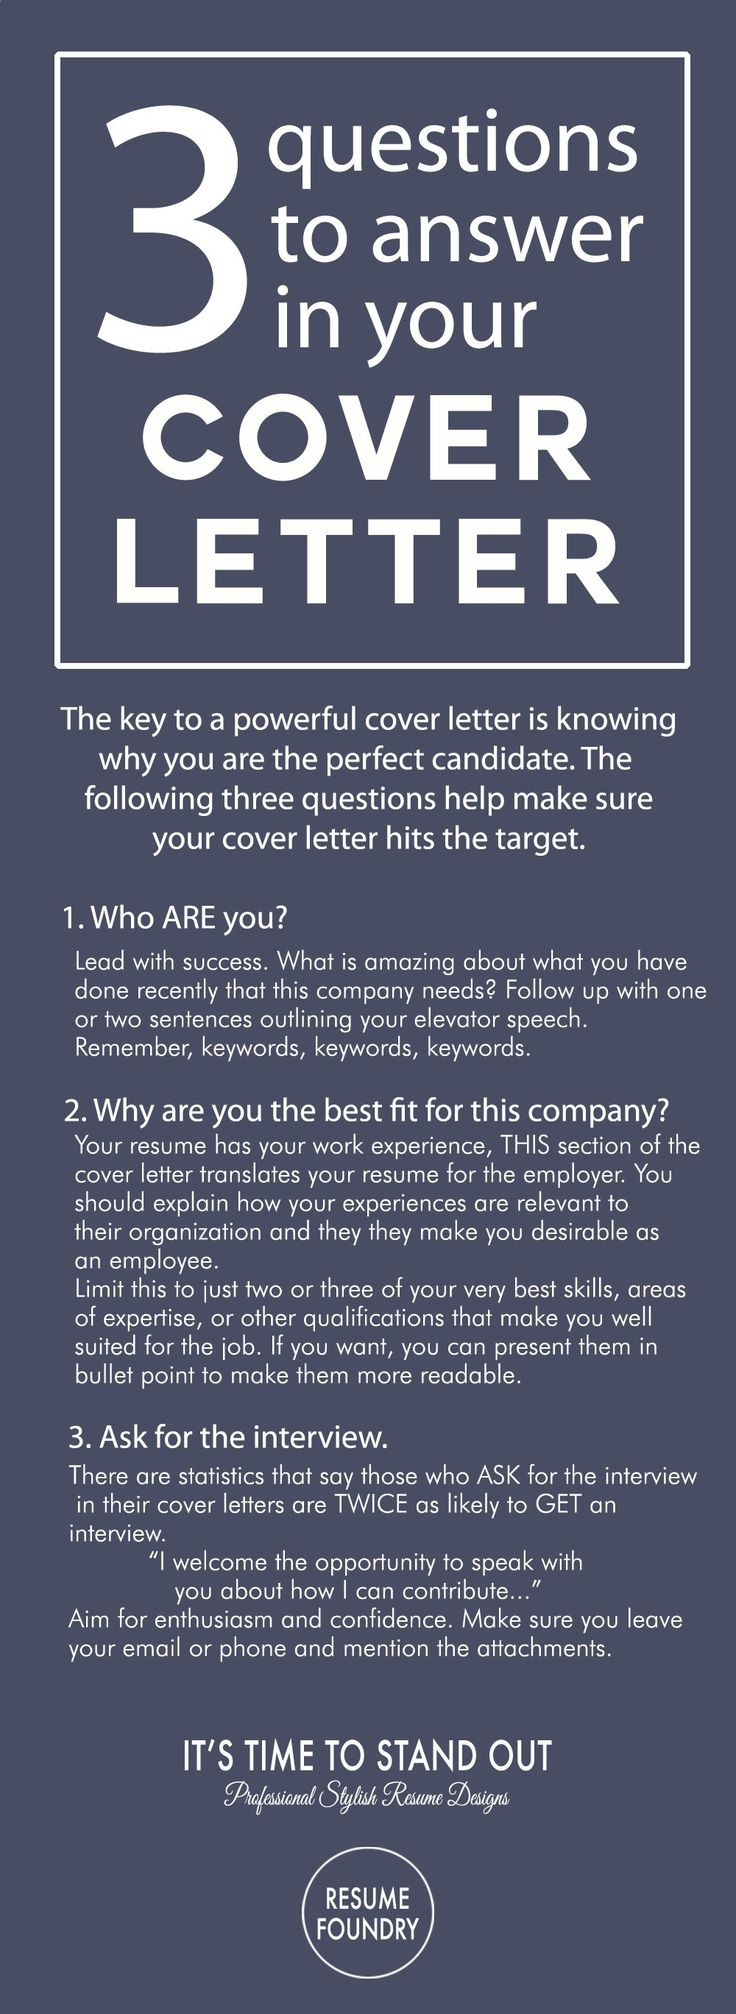 Resume Follow Up Email Sample Gorgeous 506 Best Career Images On Pinterest  Resume Career And Career Advice